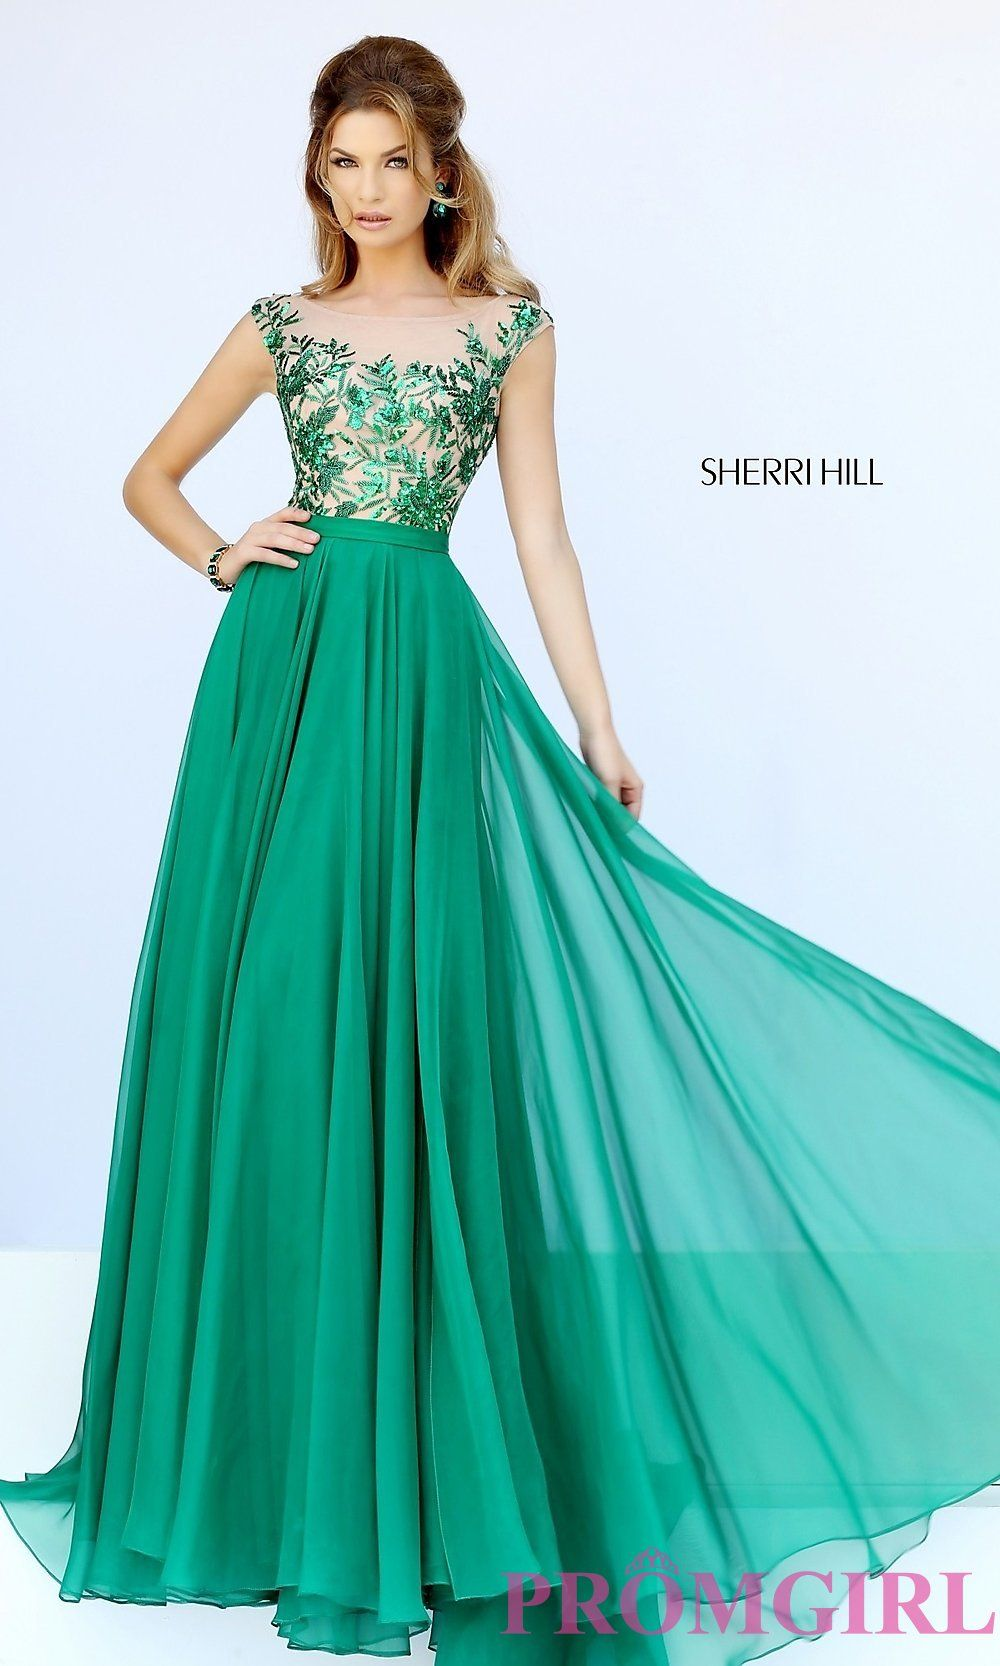 Sherri Hill Cap-Sleeve Long Sequined Prom Dress | Prom and Prom ...